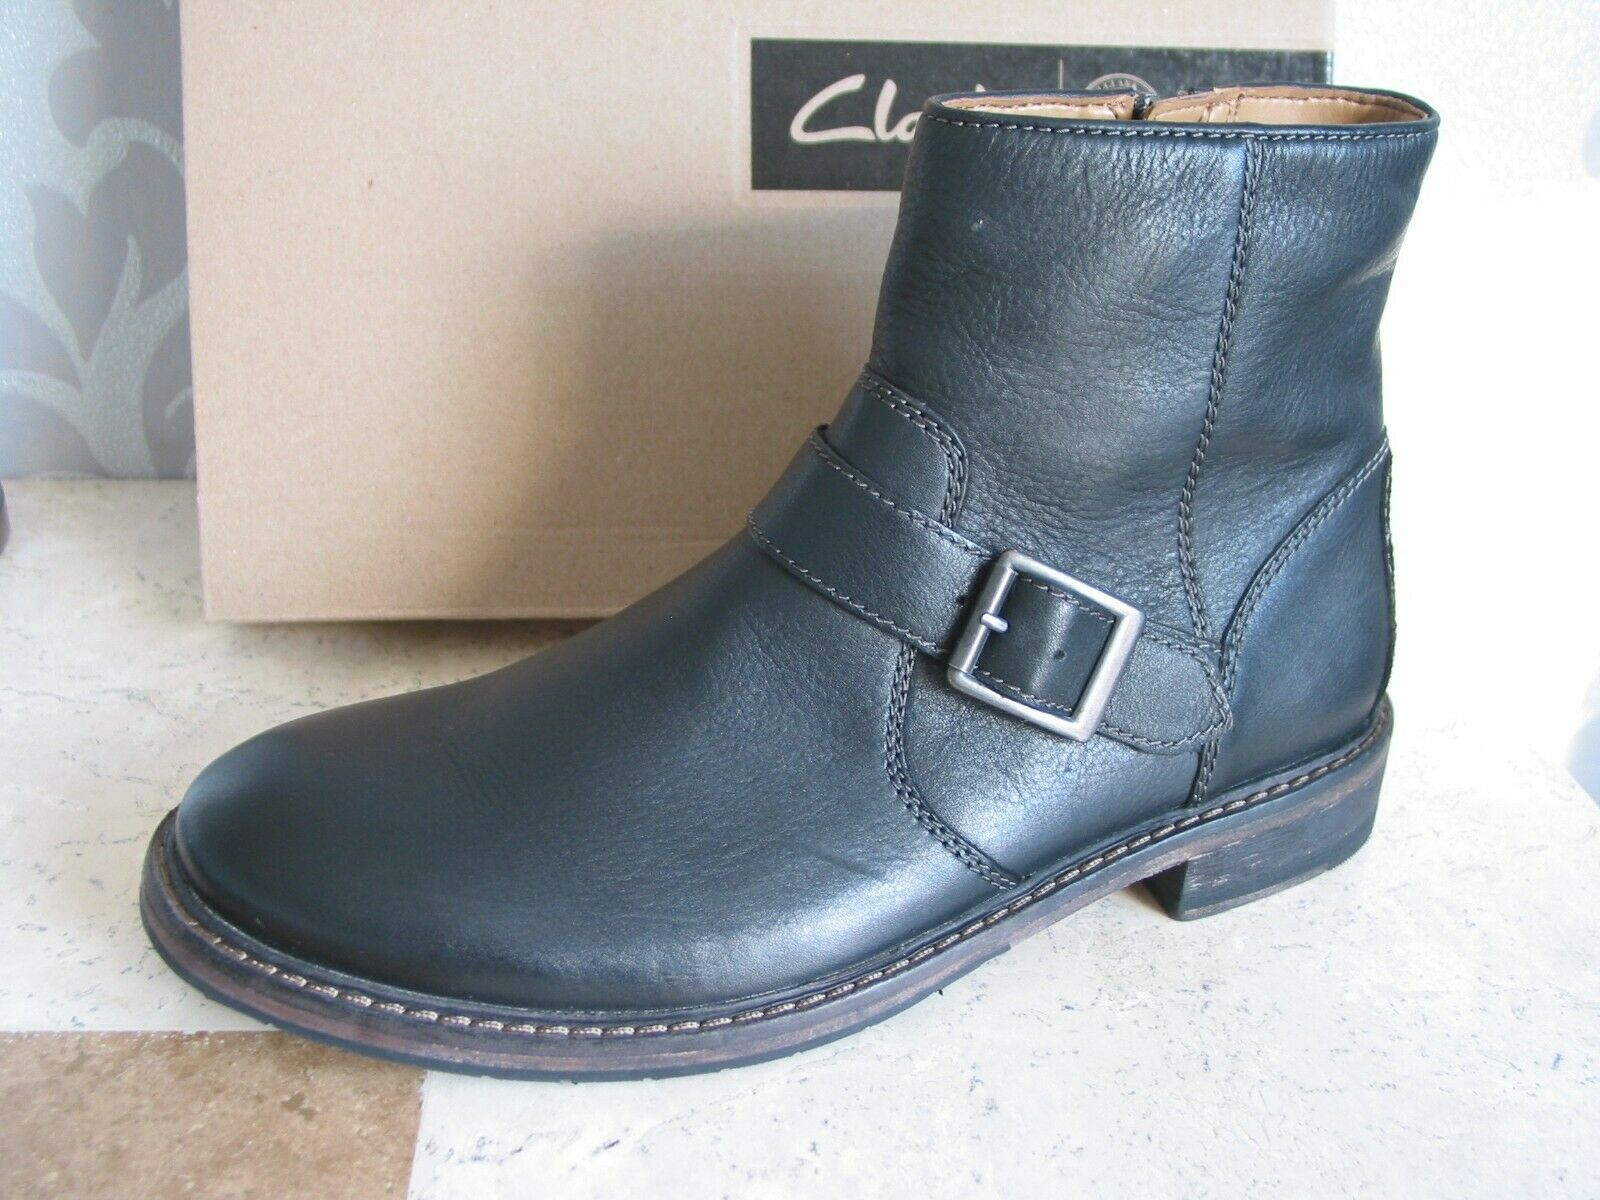 NEW CLARKS CLARKDALE SPARE BLACK LEATHER ANKLE BOOTS SIZE 8 & 6